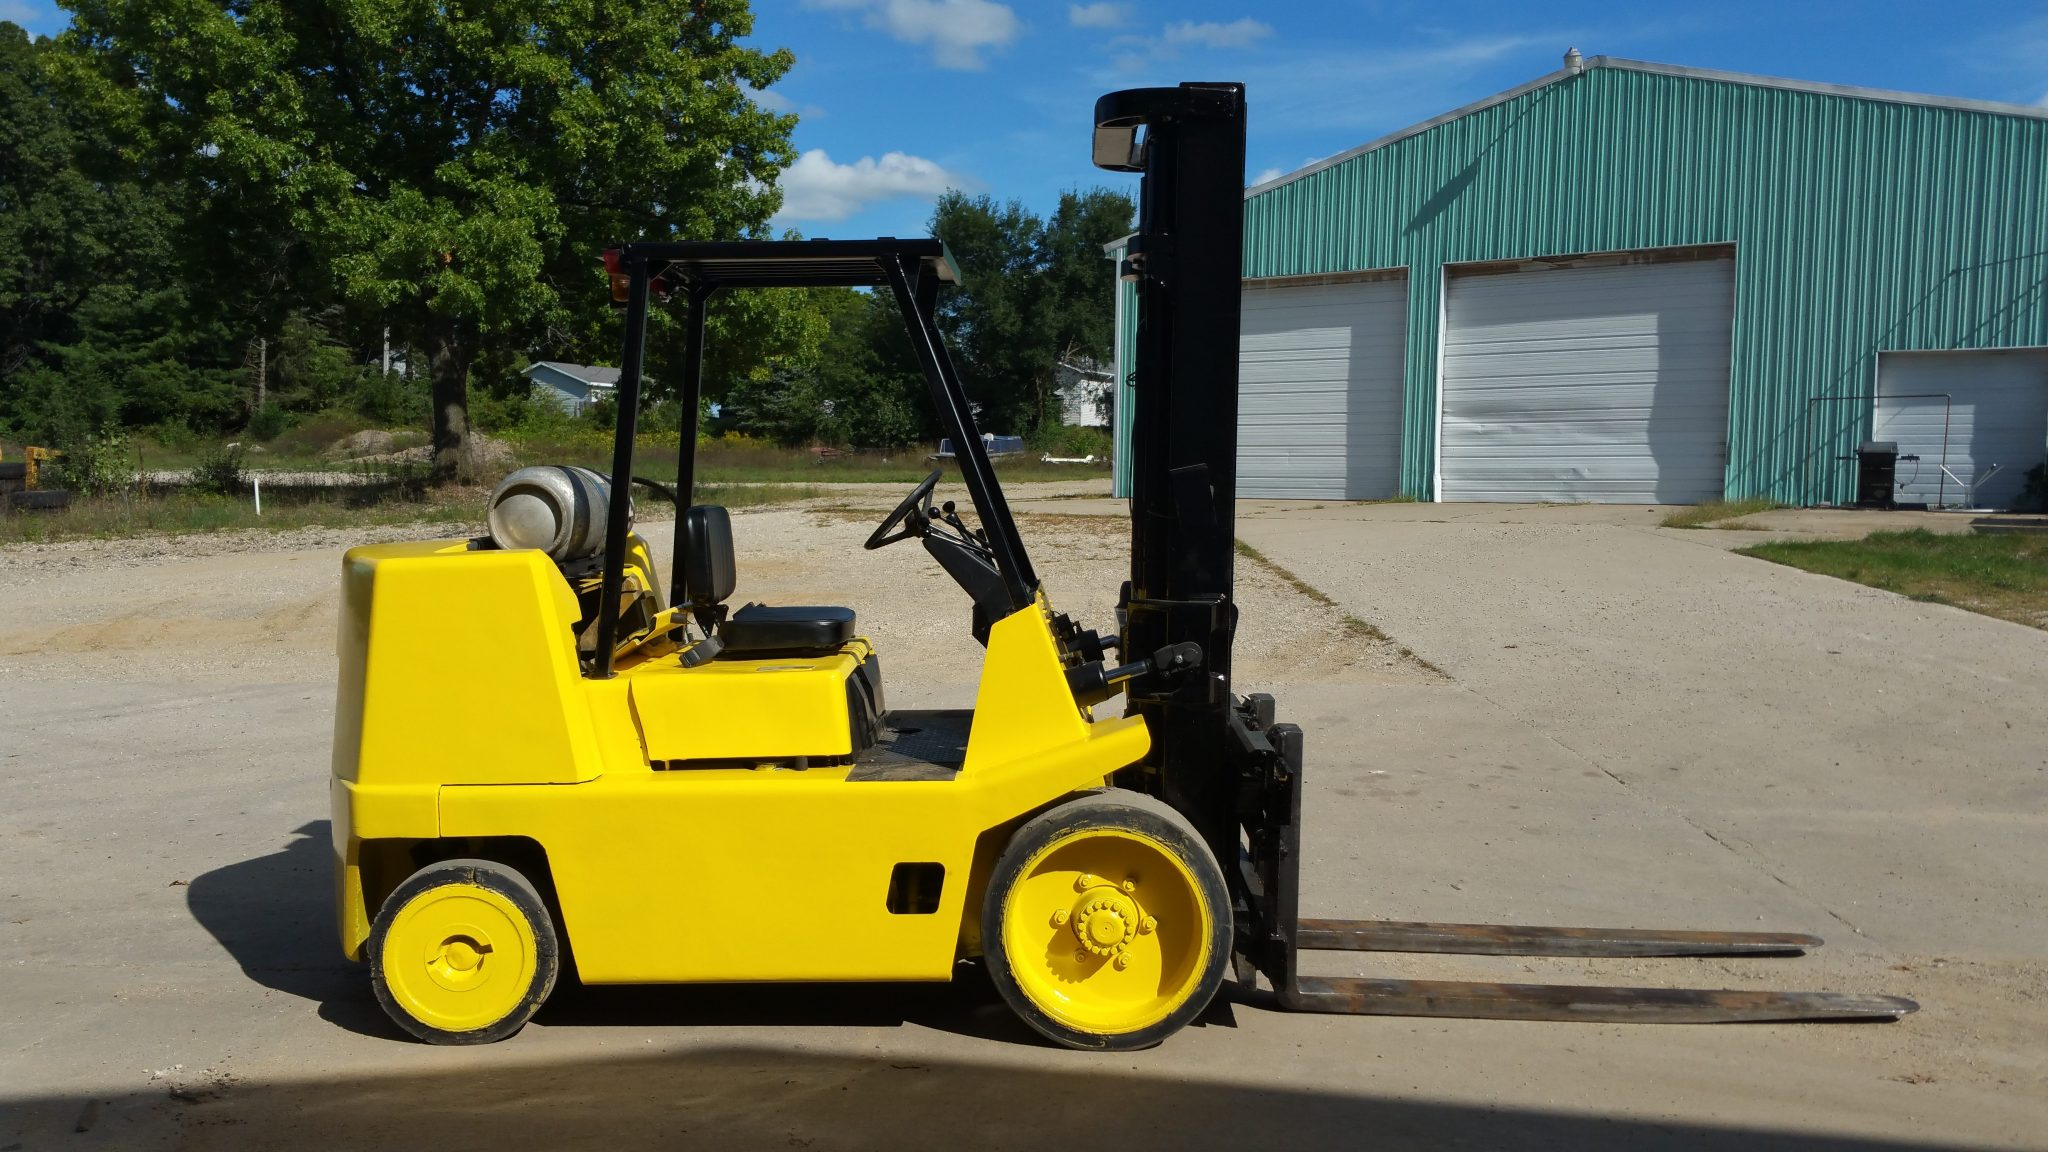 10,000lb. Capacity Yale Forklift For Sale 5 Ton